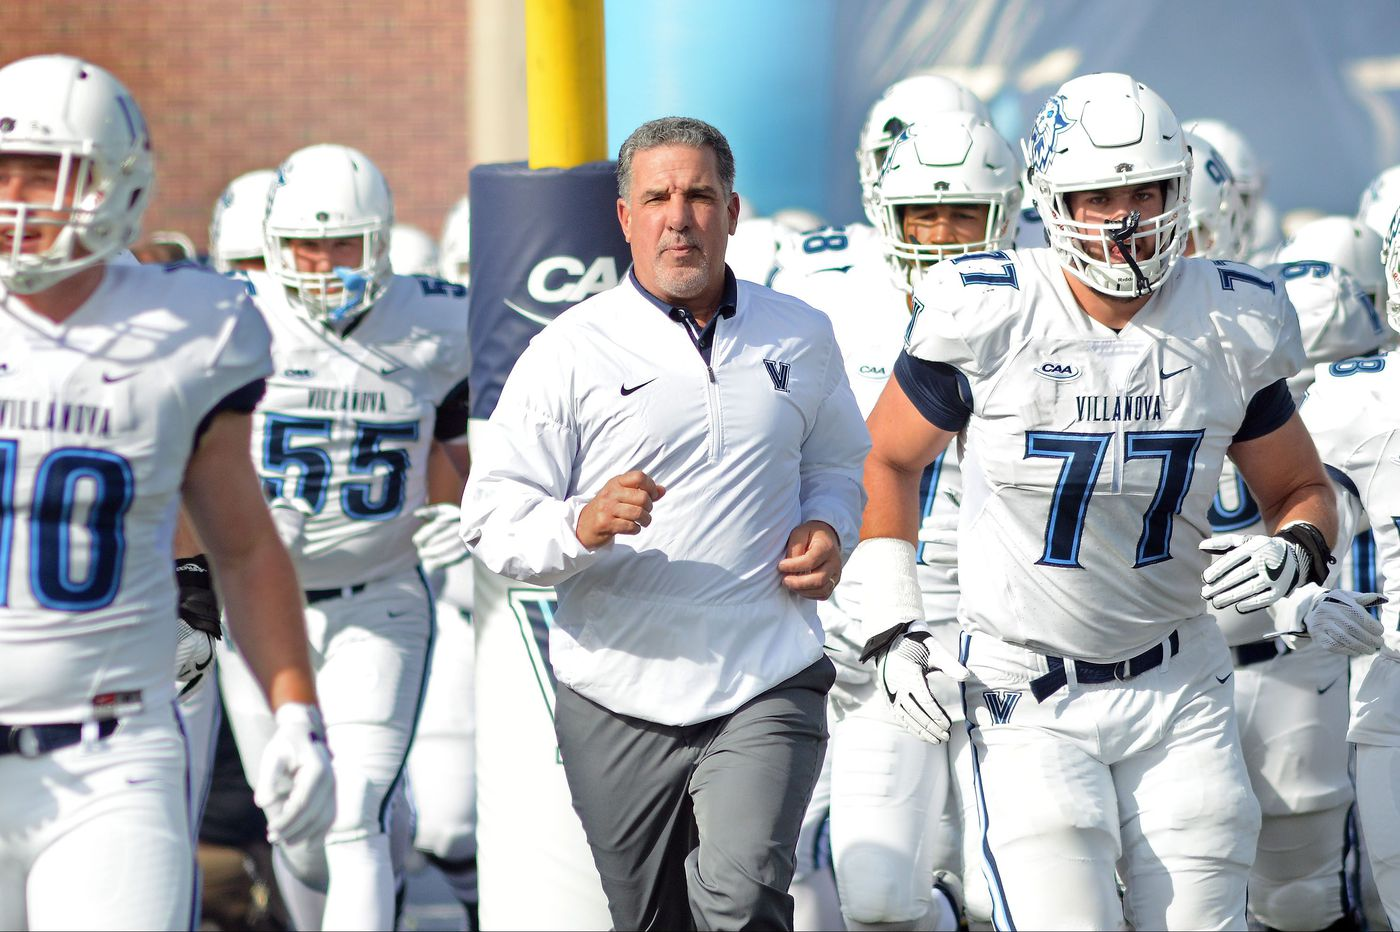 Villanova football preview: Key issues, players and games